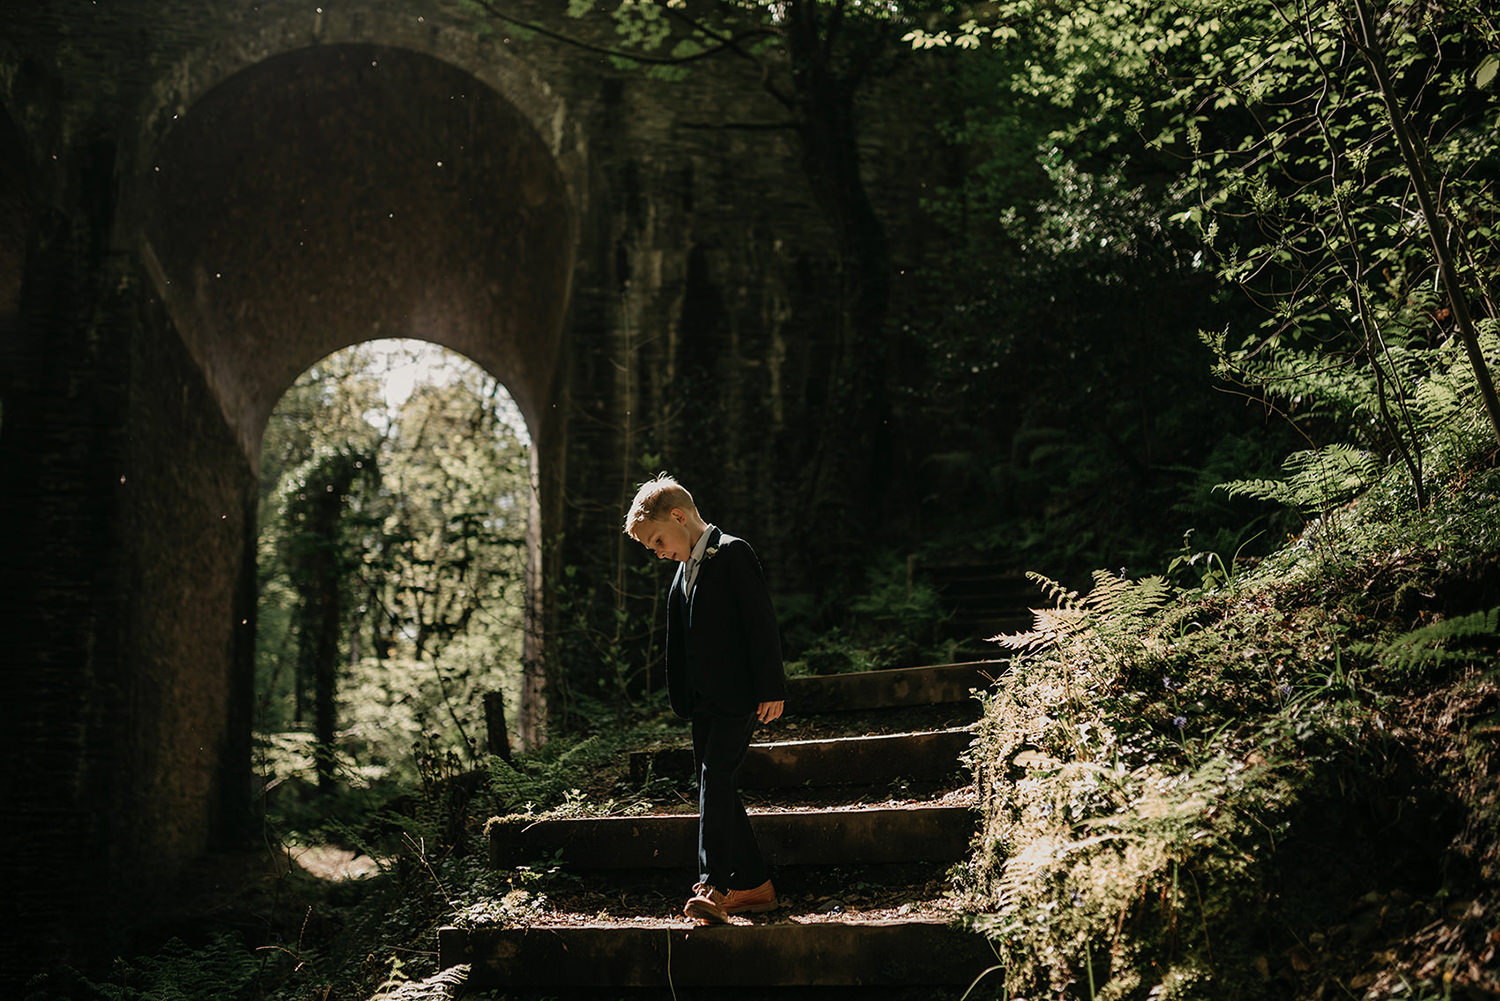 Playing by the bridge in Groudle Glen, Isle of Man